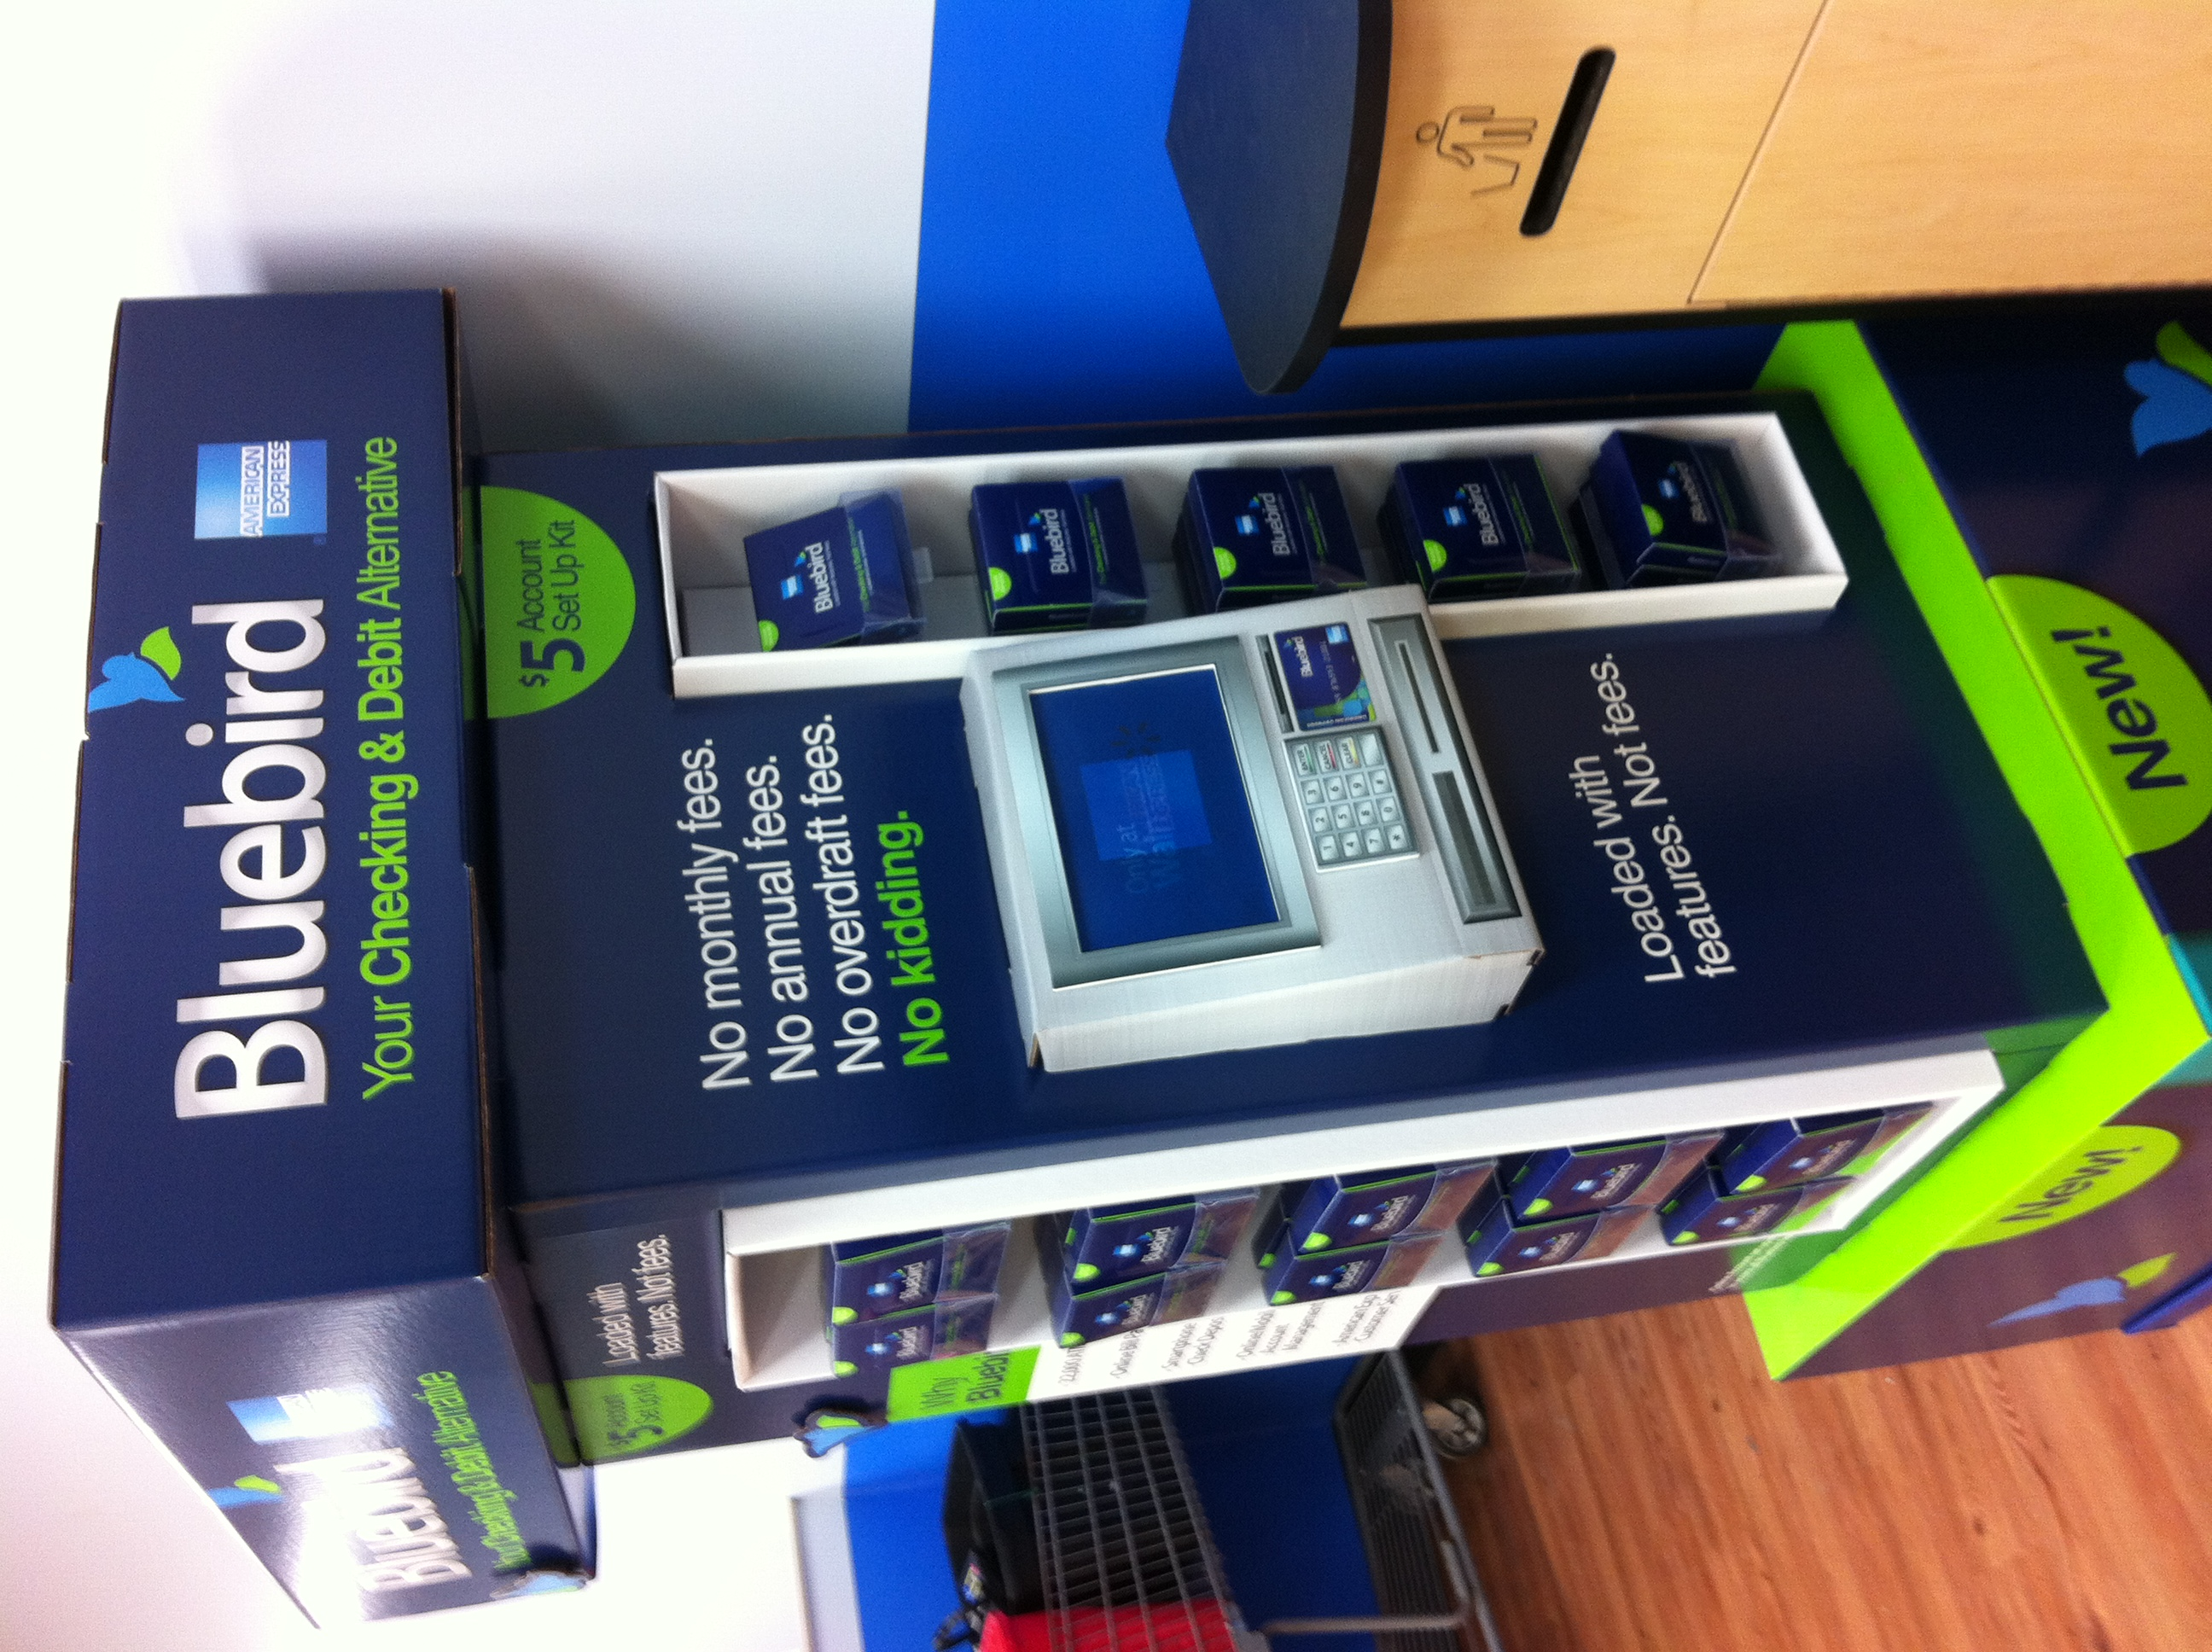 Bluebird Vs Greendot Prepaid Wins Wiring Money From Walmart So If Is Great And Big Why Wont It Be A Success First Because They Will Make Very Little On Not Lose